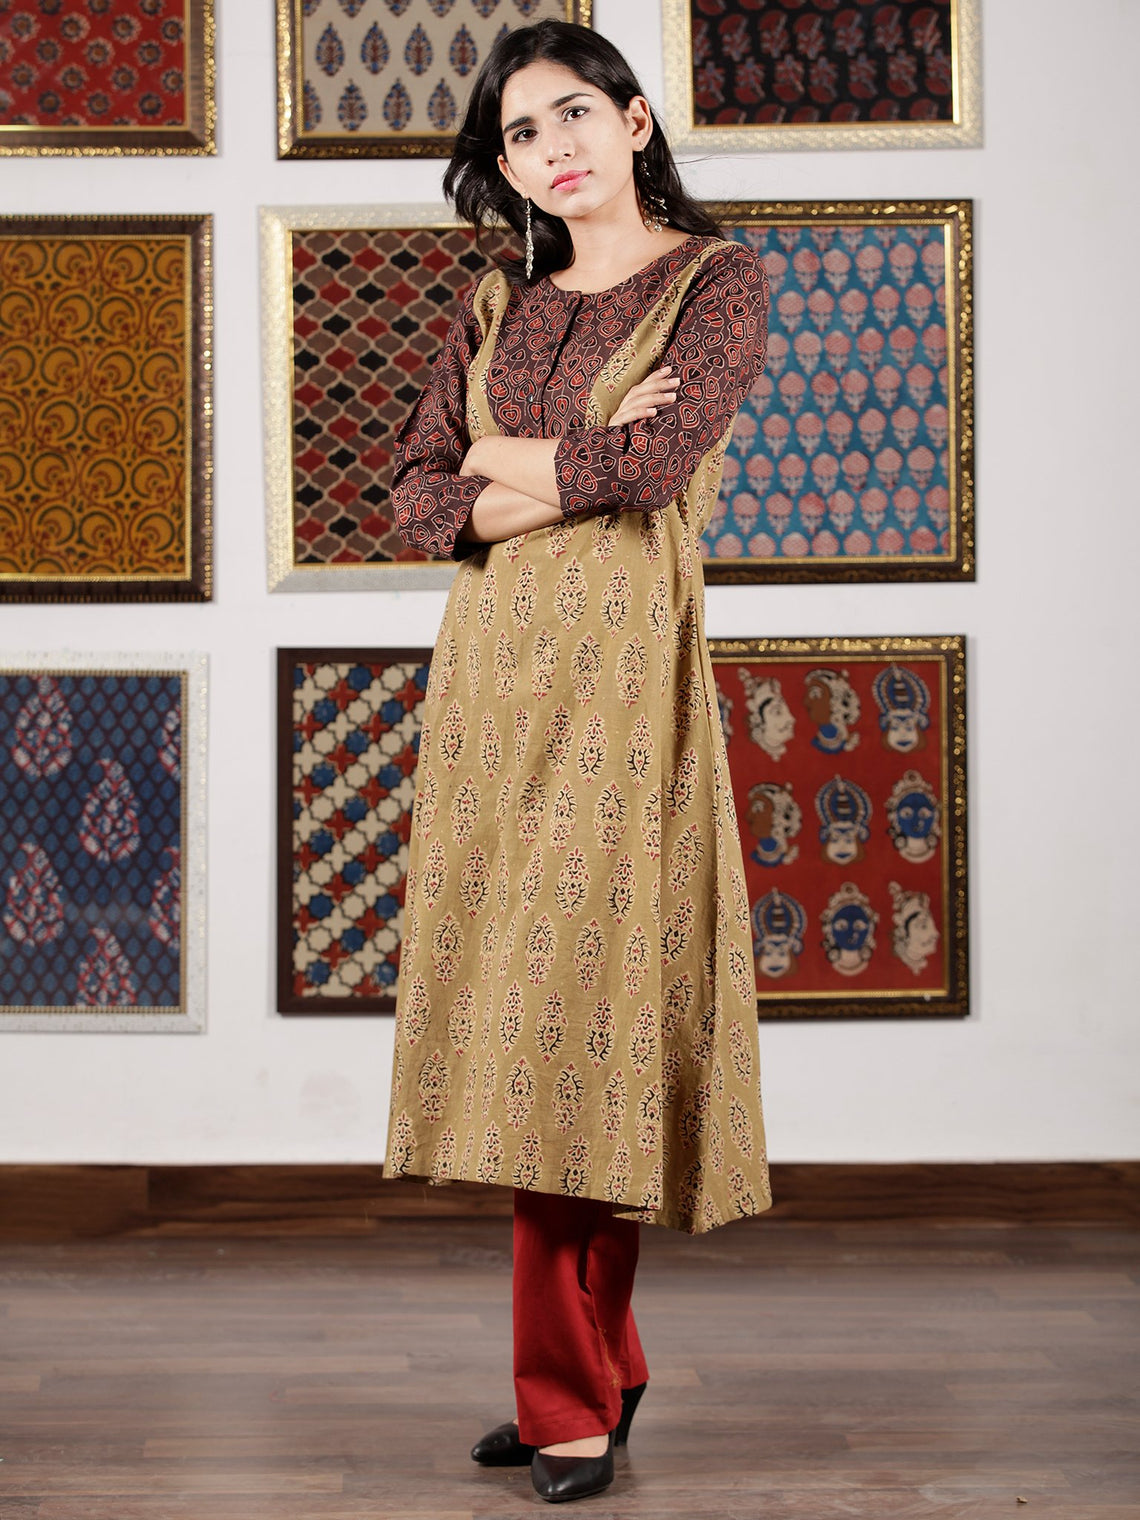 Brown Maroon Black Ajrakh Hand Block Printed Kurta in Natural Colors - K111F1609